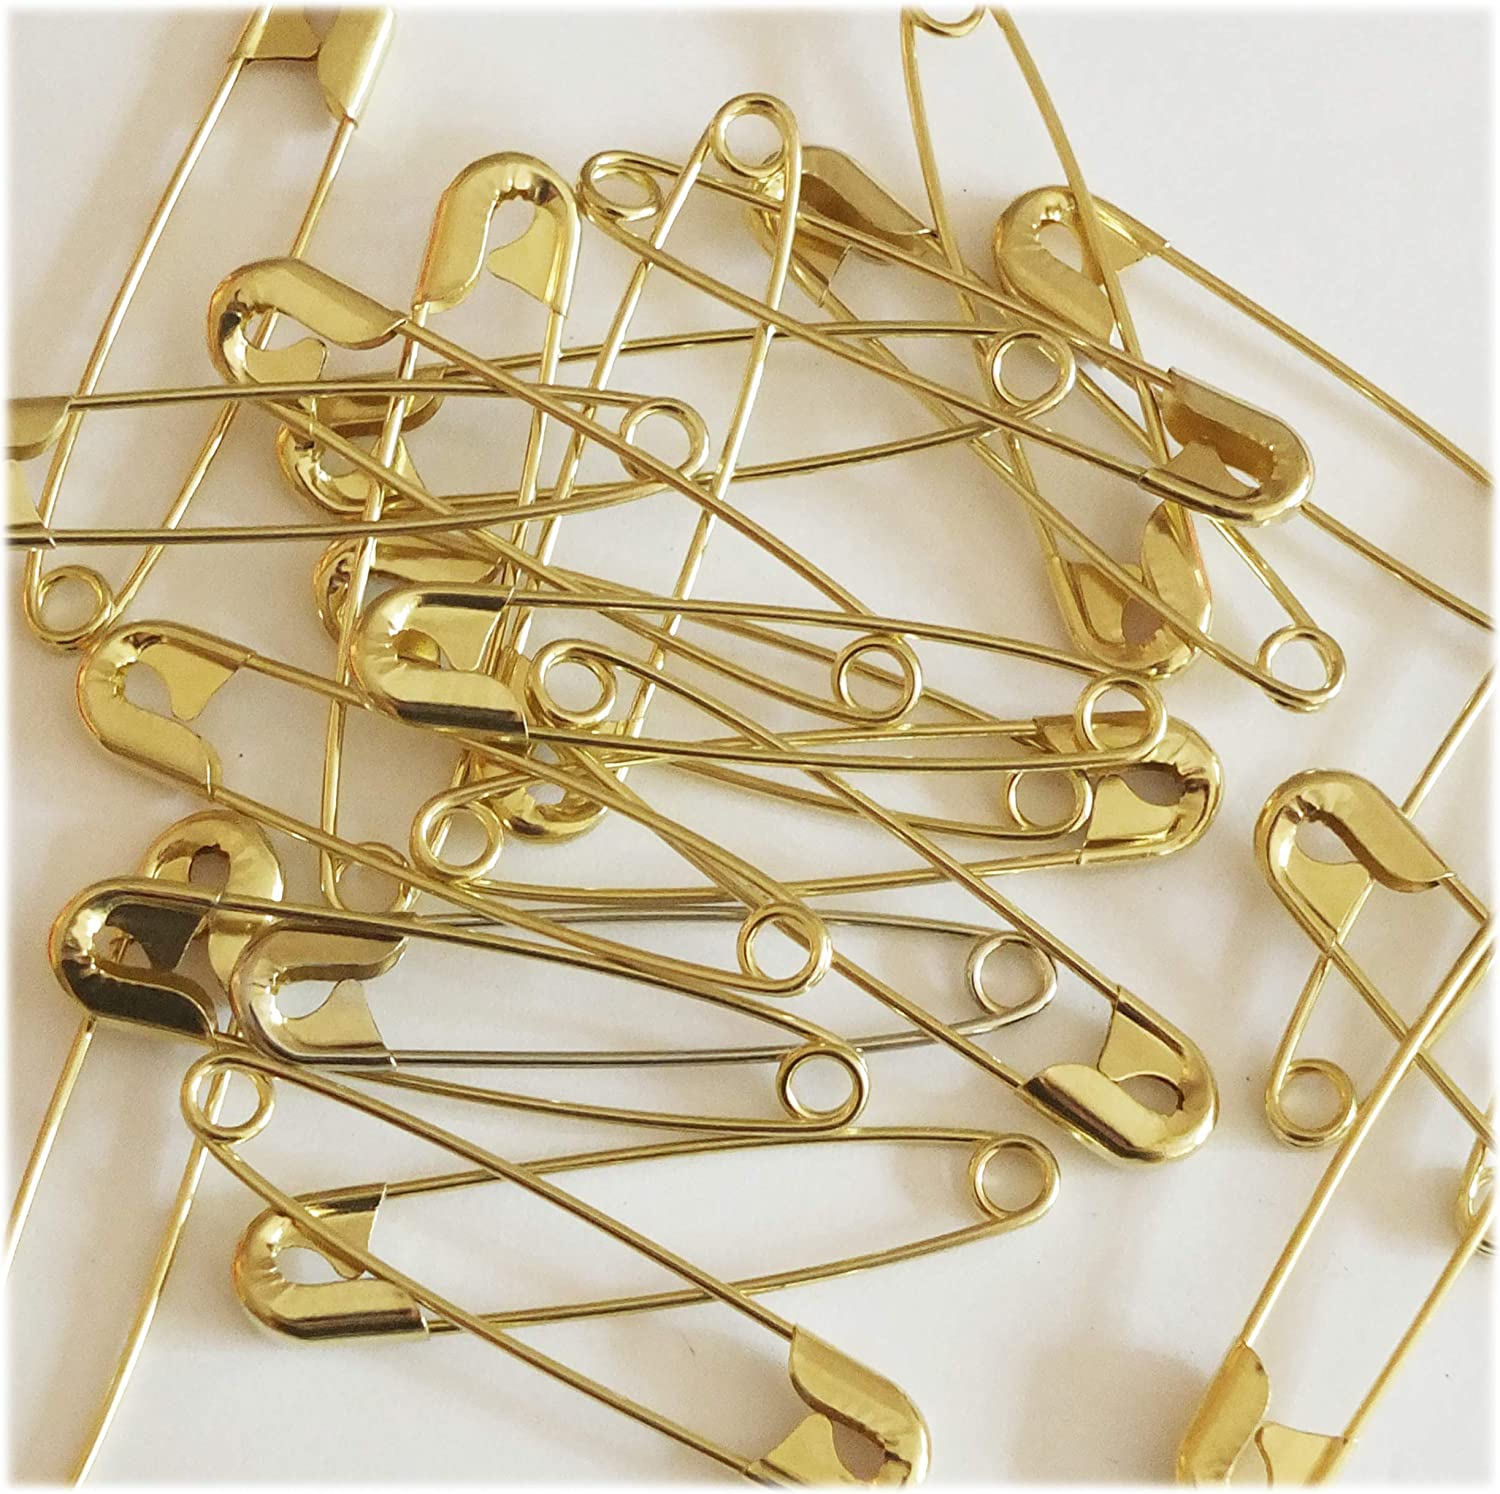 """SAFETY PINS Size 3 2"""" GOLD New Orleans Mall TONE in Made Limited time cheap sale 100 BULK PK USA"""